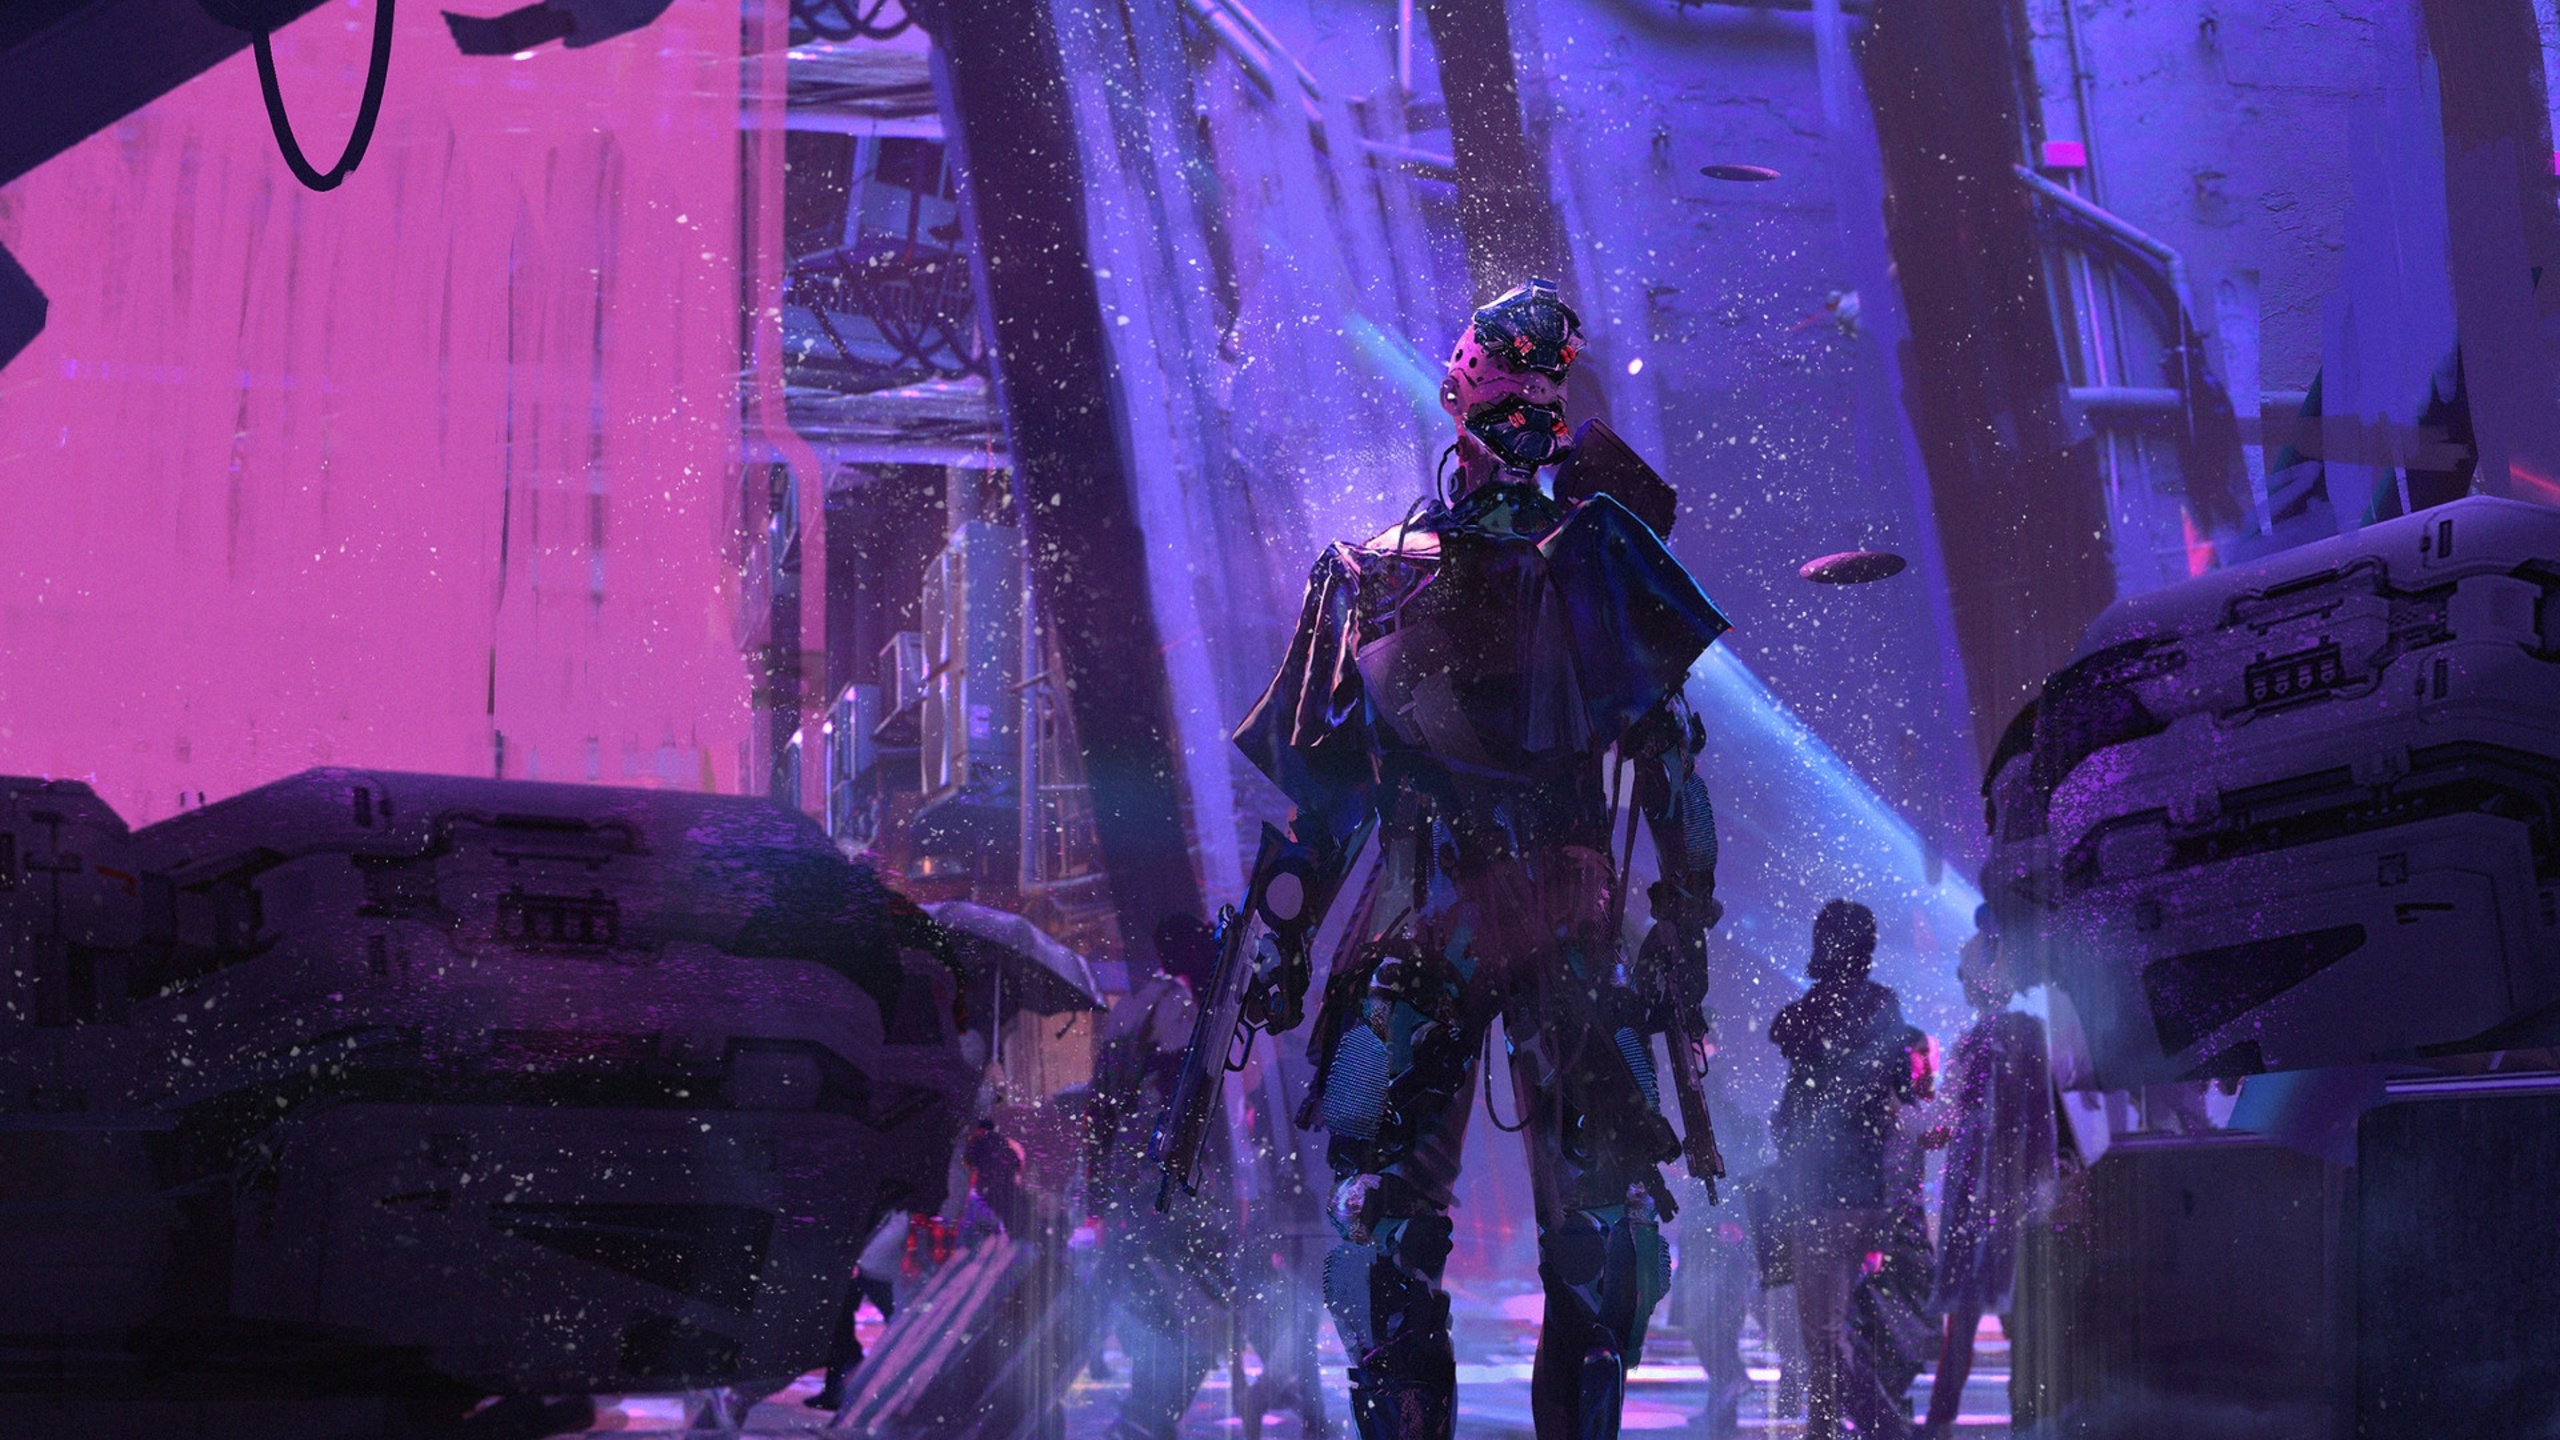 2560x1440 sci fi cyberpunk neon robot 1440p resolution hd